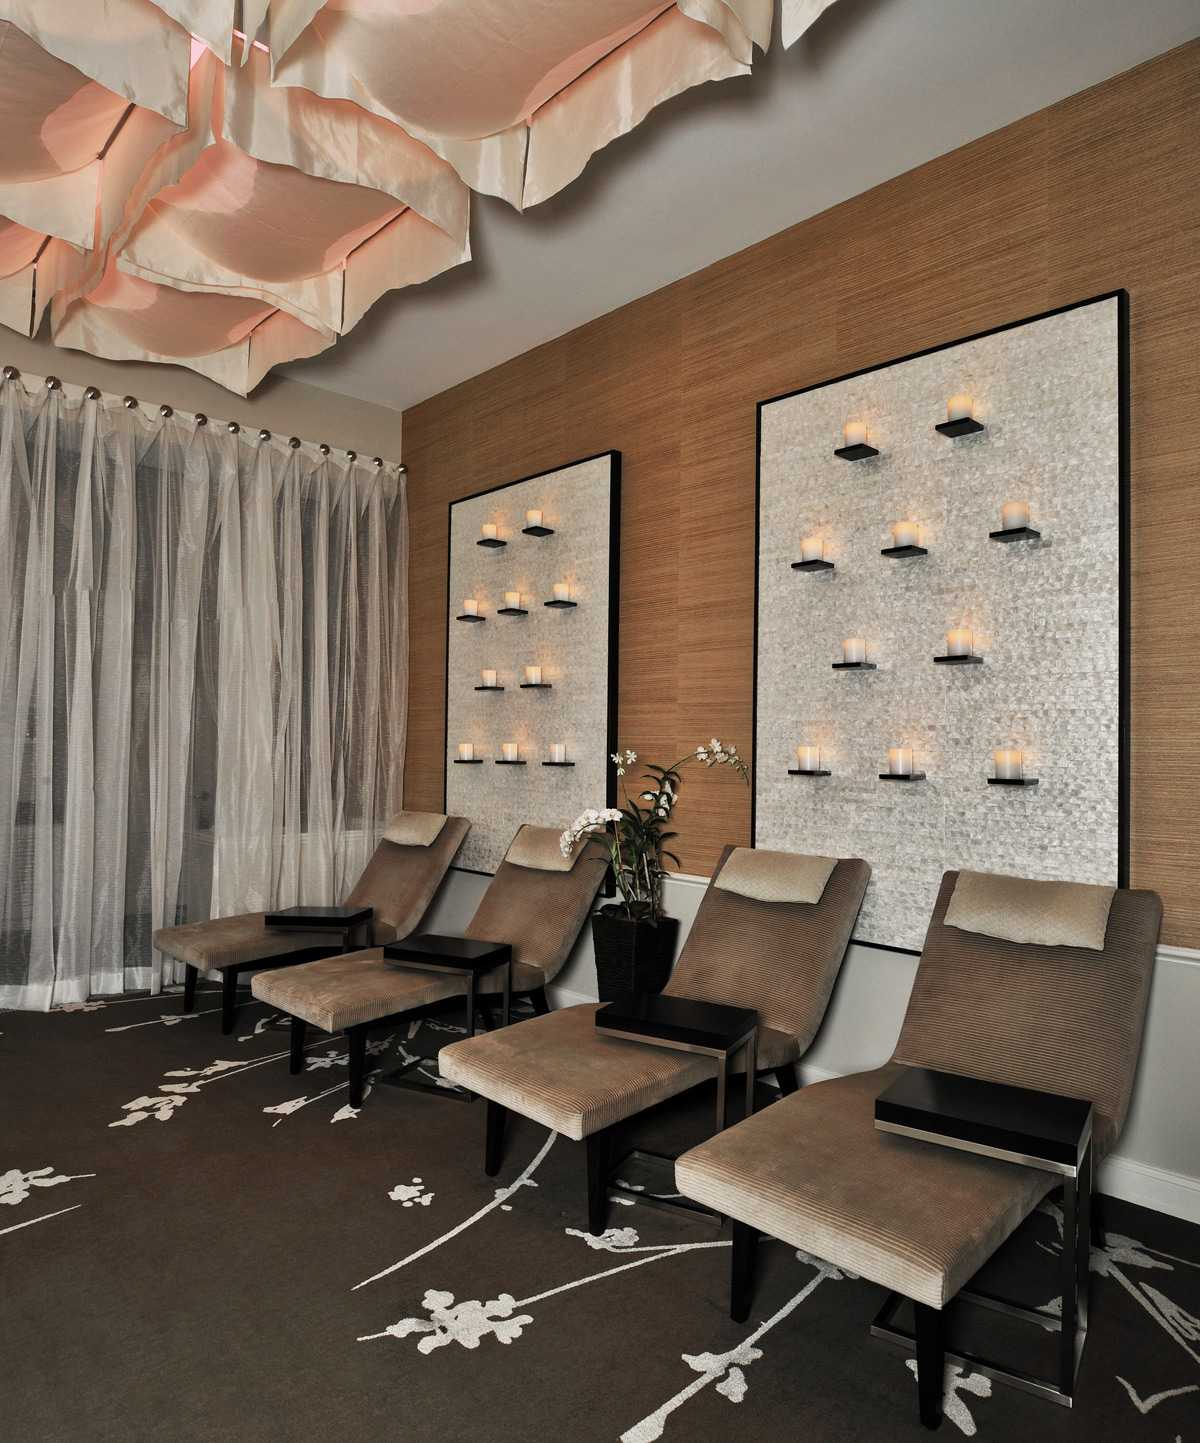 the spa treatment room with an array of four chairs in front of a wall of lit candles